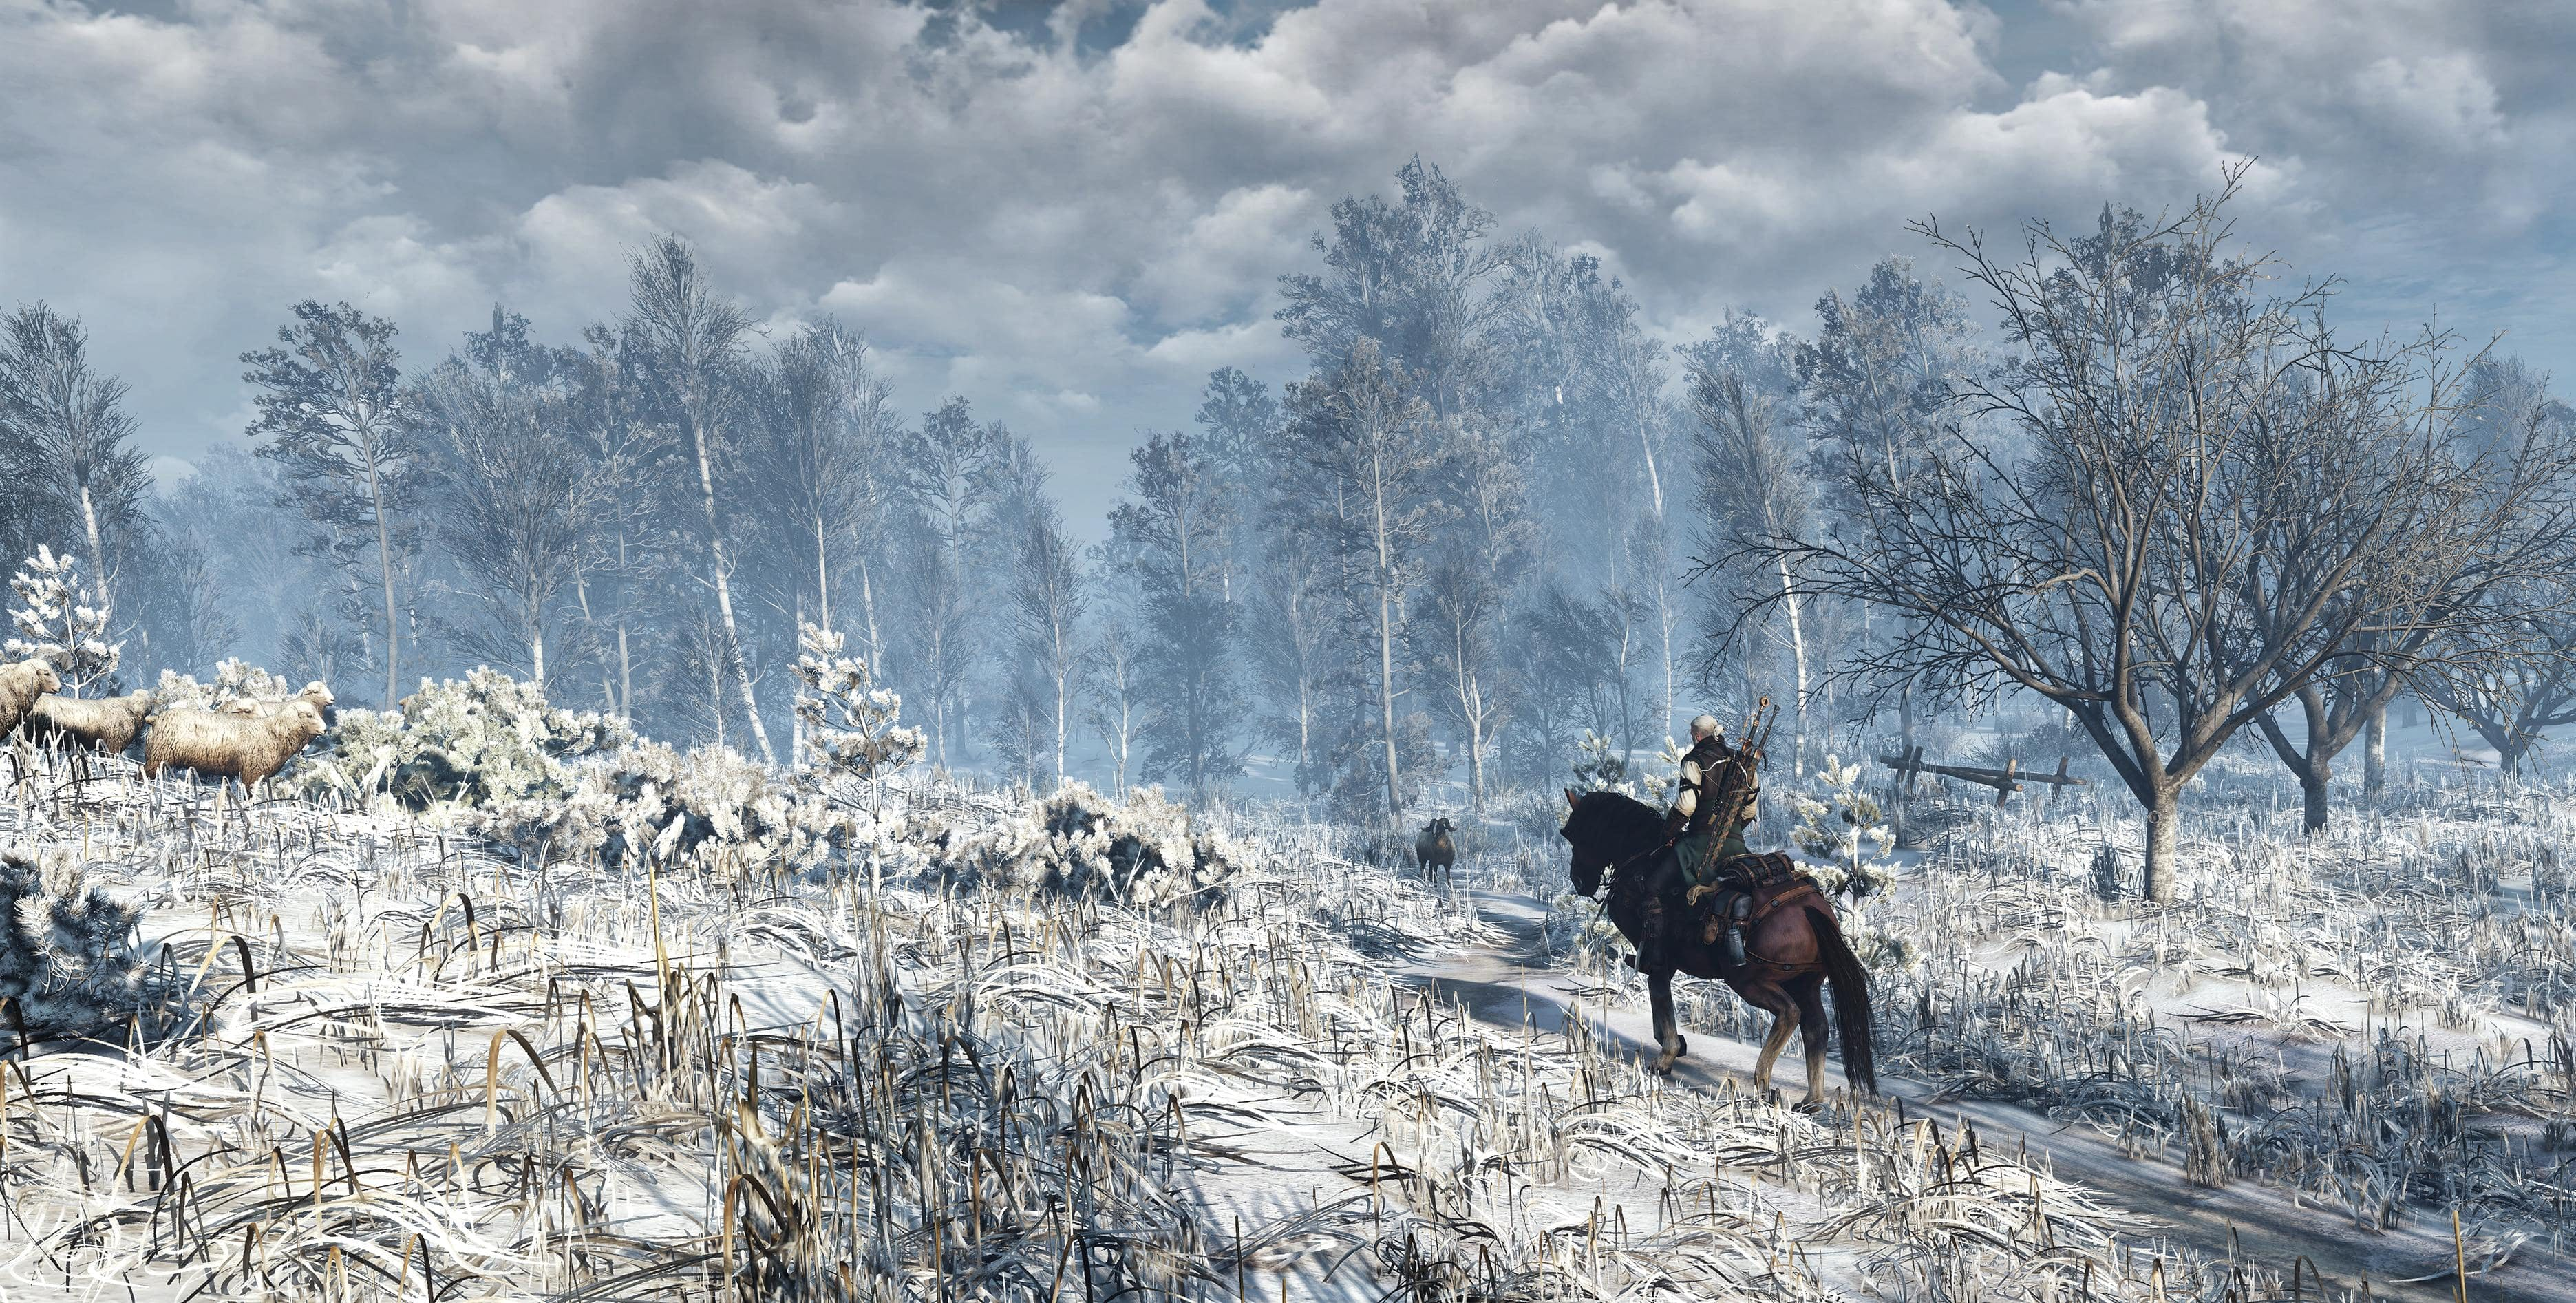 Screenshot The Witcher 3 - Snow